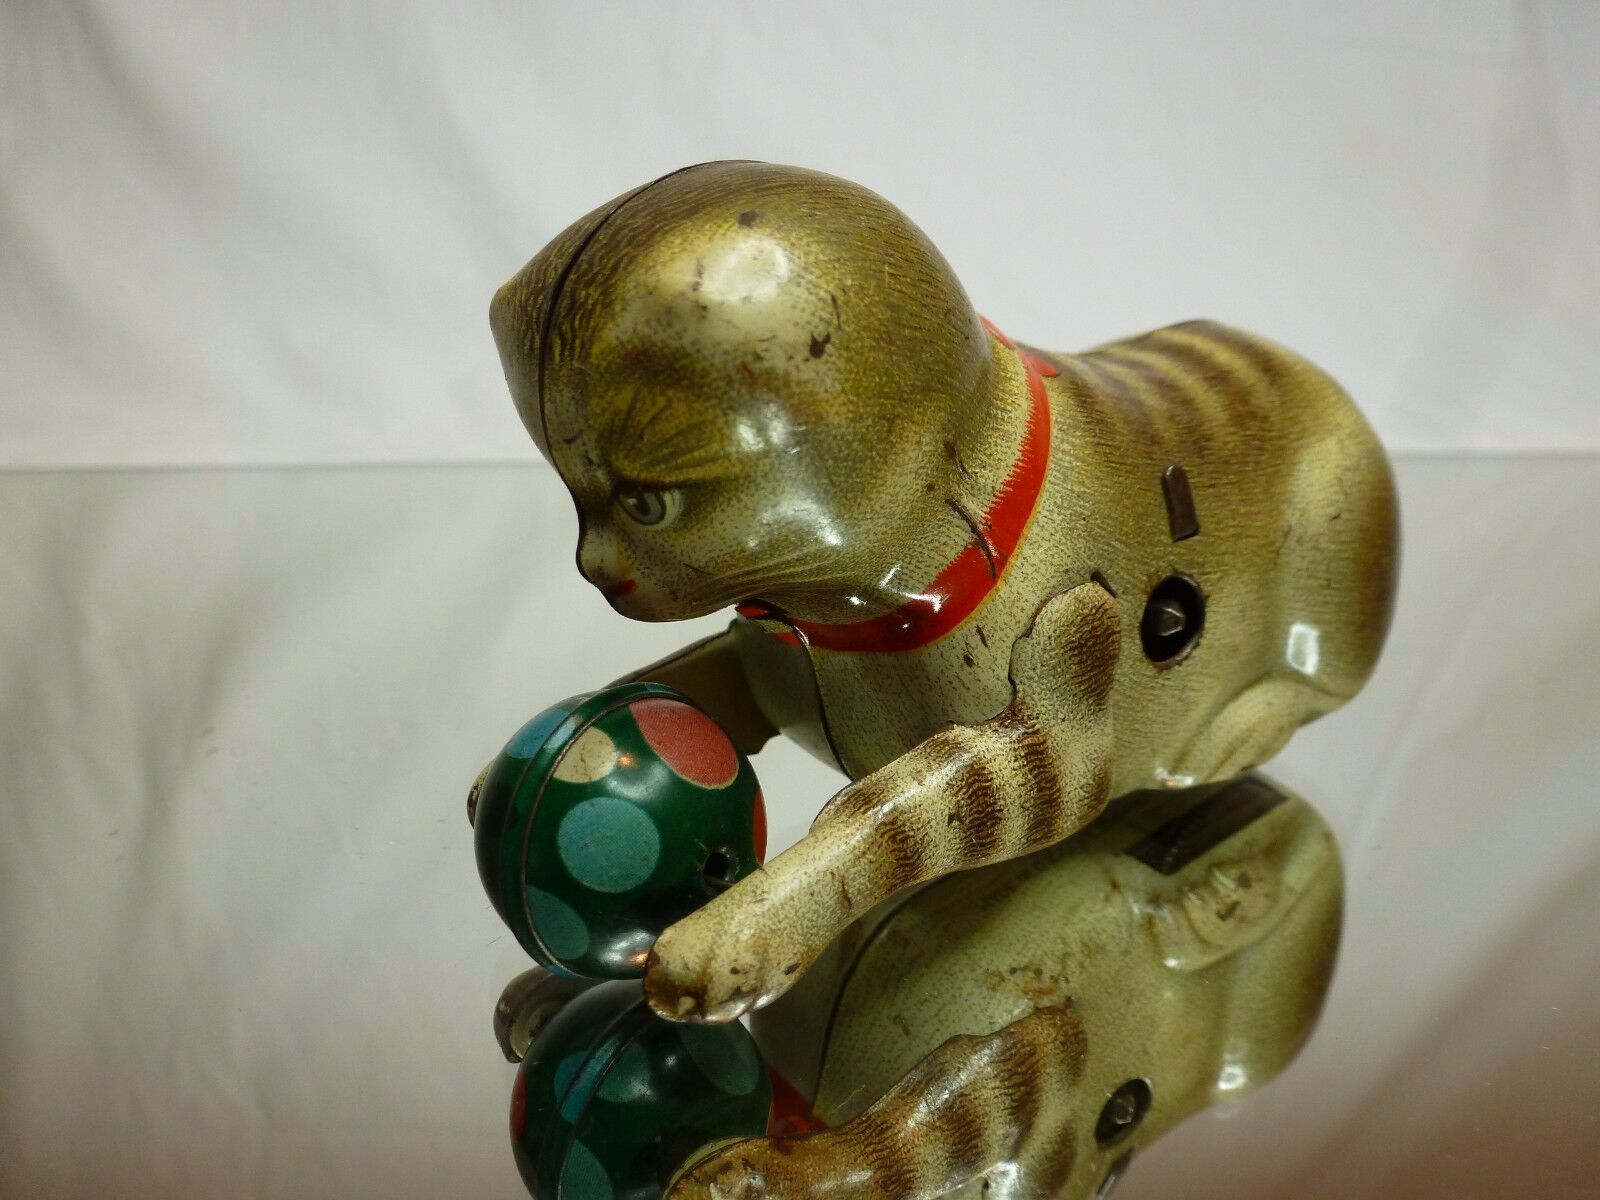 VINTAGE TIN TOY KÖHLER US ZONE GERMANY - CAT PLAYING with BALL - GOOD CONDITION